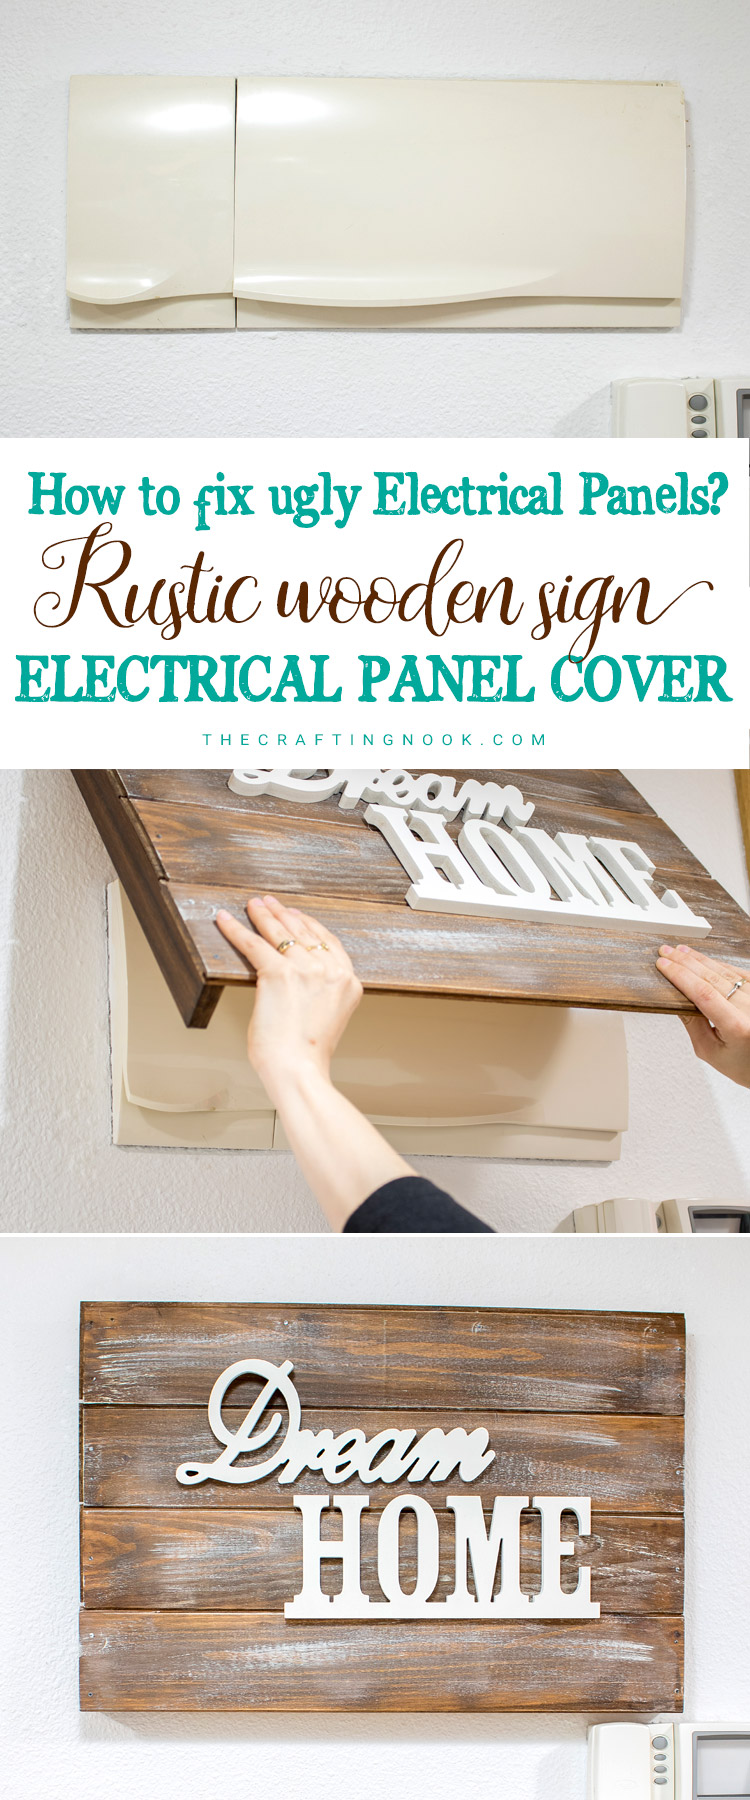 hight resolution of diy rustic wooden sign electrical panel cover